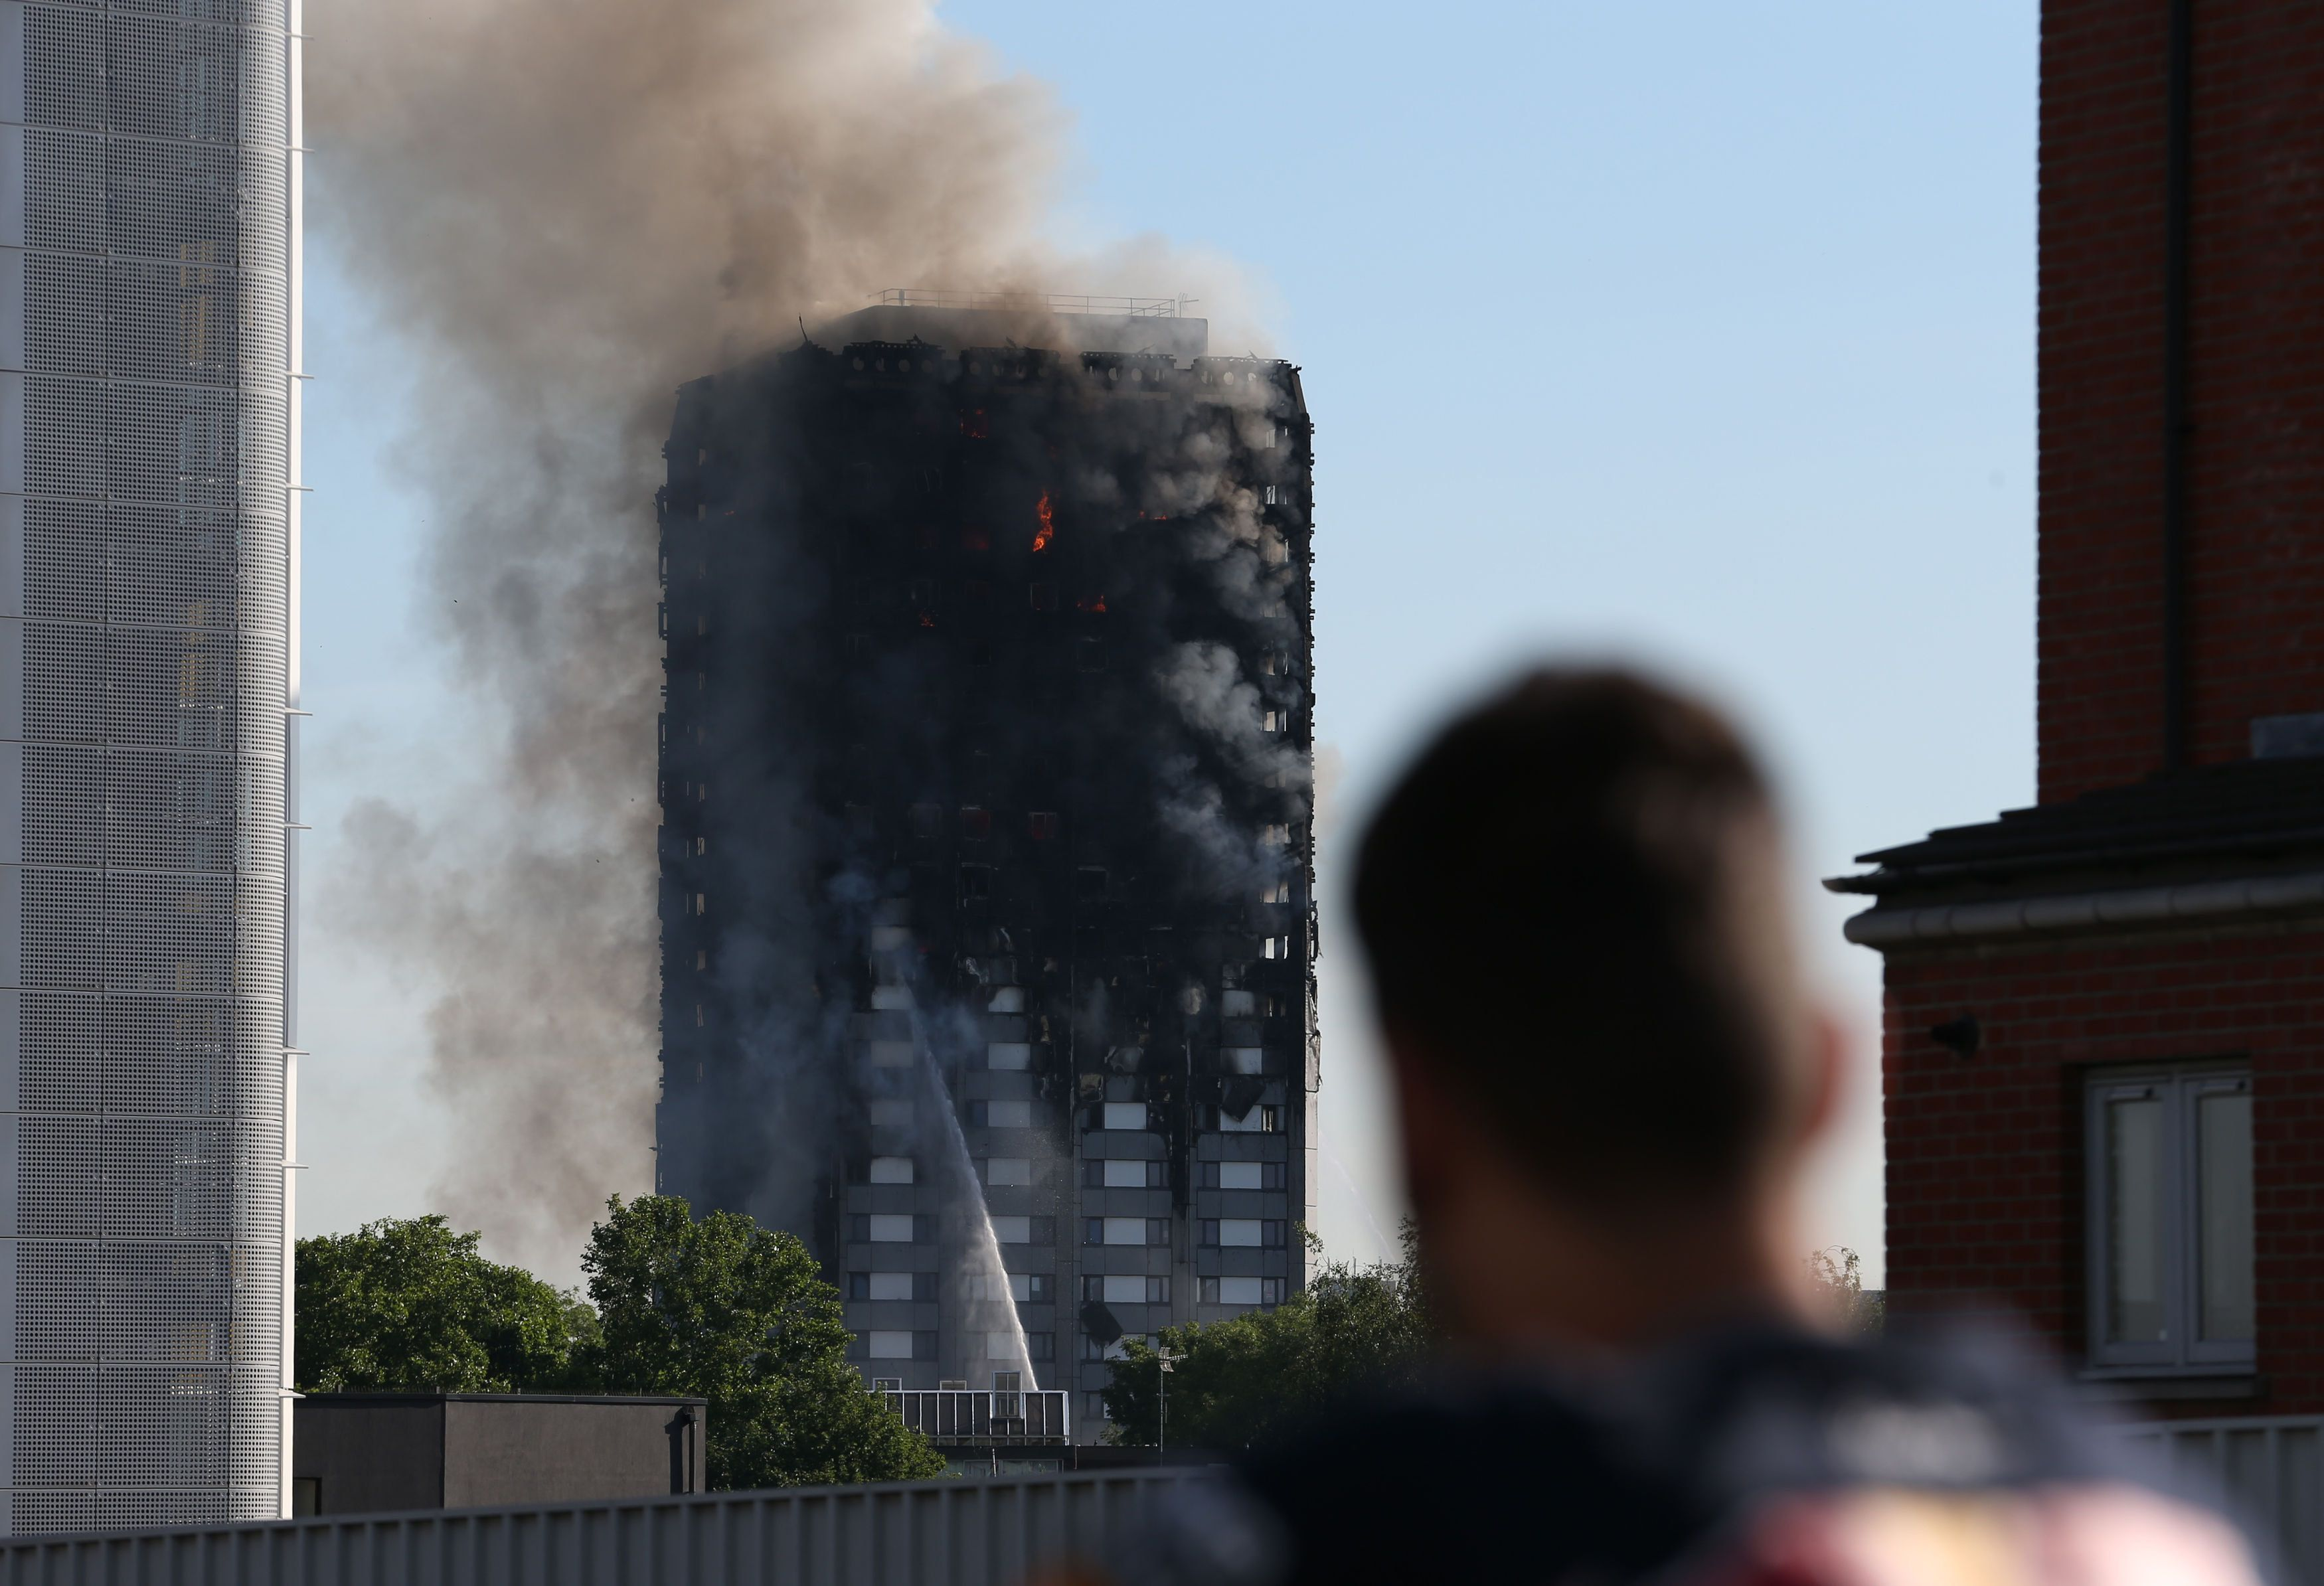 Man Who Lived In Grenfell Flat Where Fire Began Feared For His Life And Was Offered Police